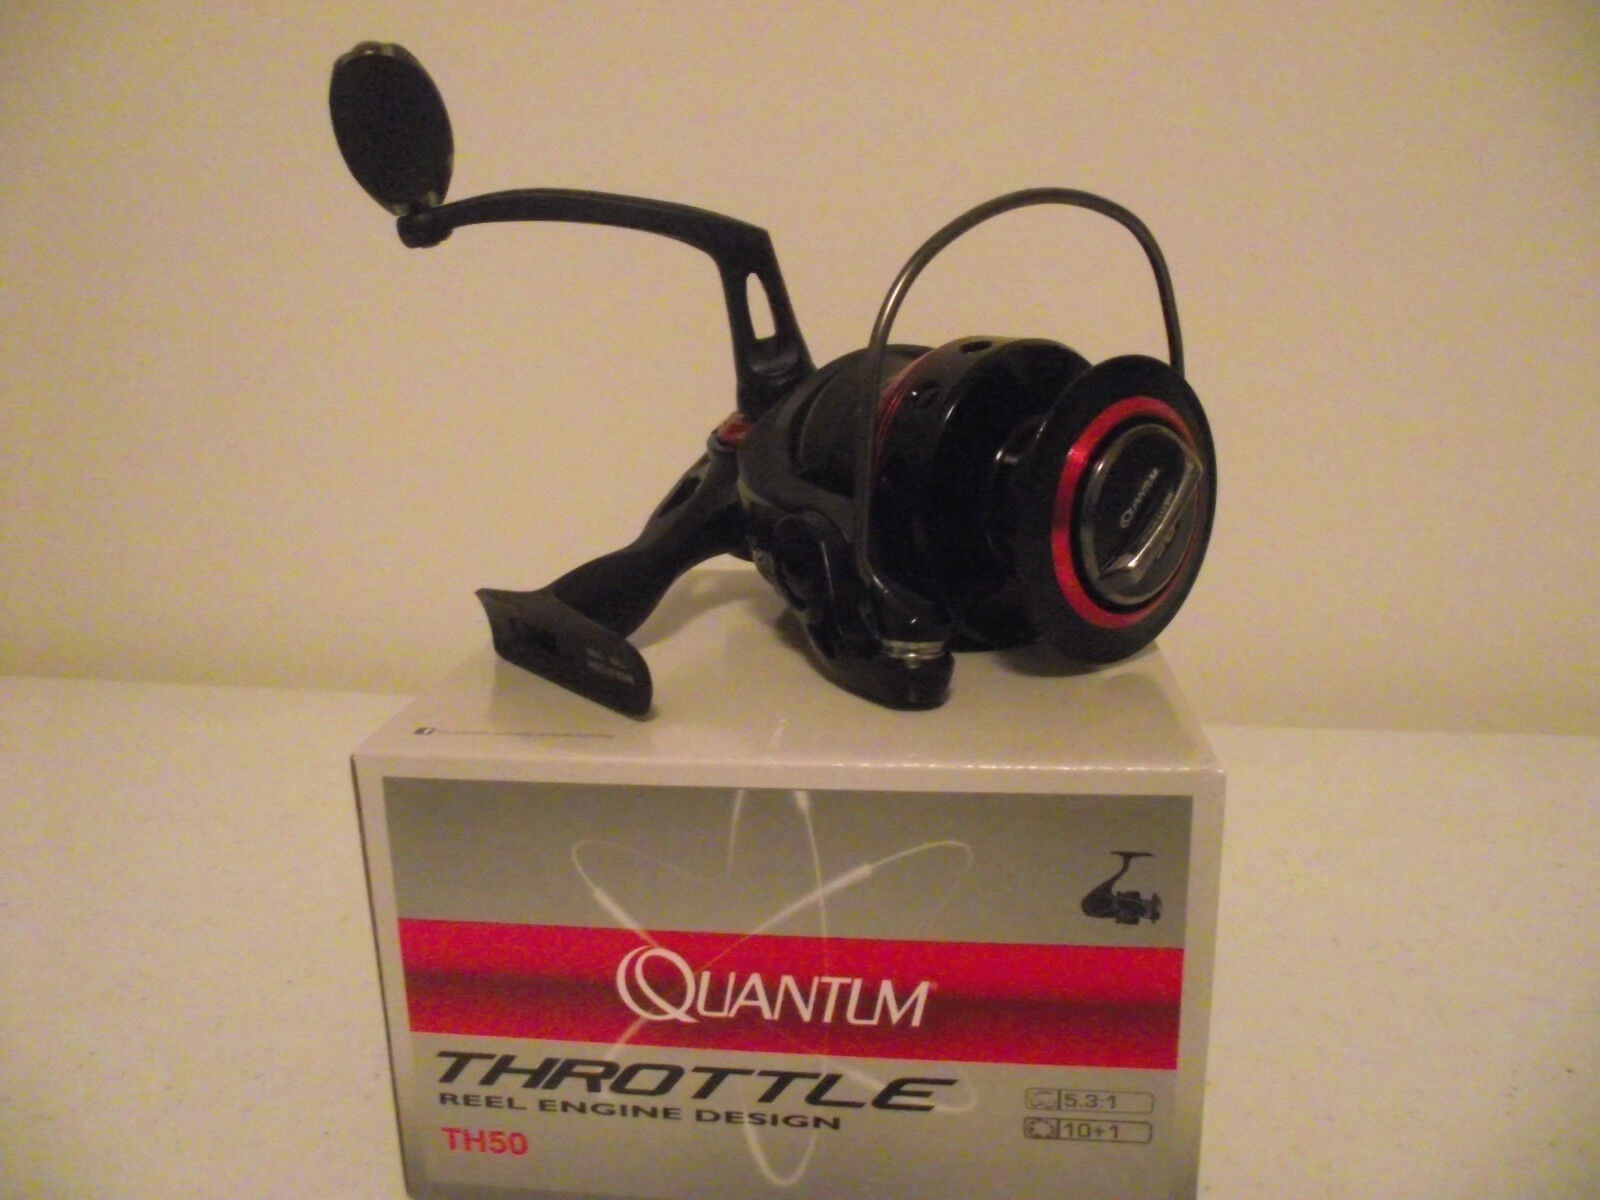 Quantum Thredtle  TH50 Spinning Reel  New in Box  big discount